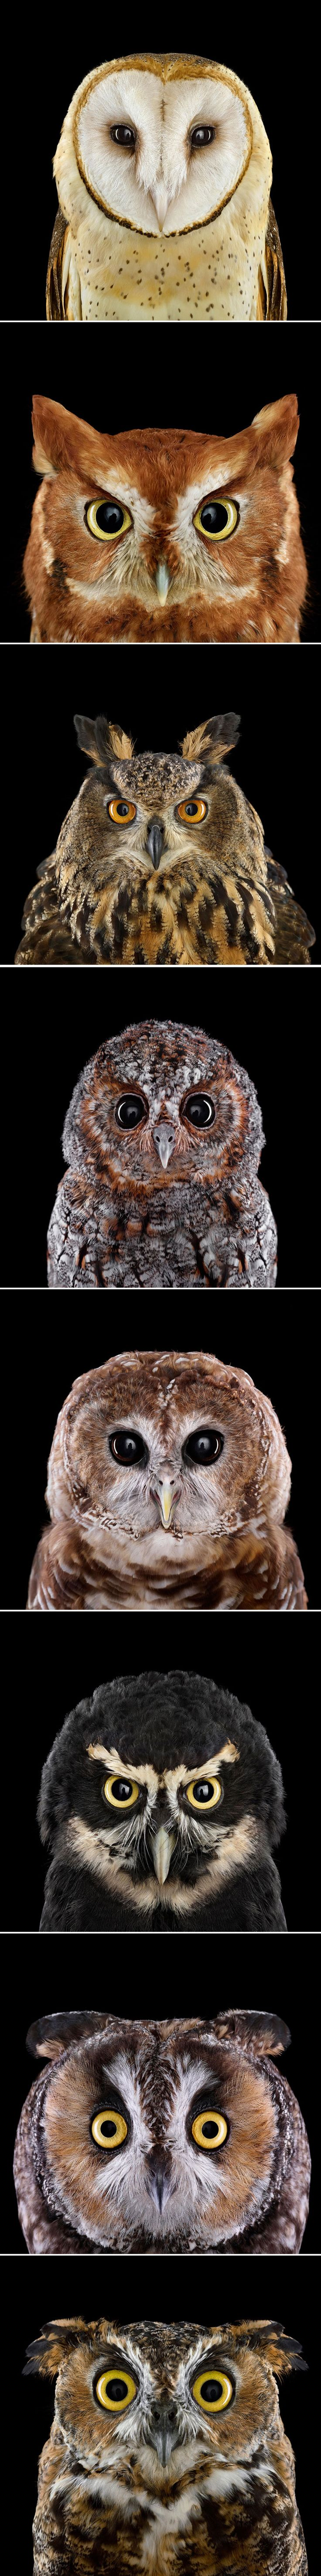 Who's Who - These owls may wear the same game face, but when it comes to personality, they're as different as day and night. - a neat article about different types of owls